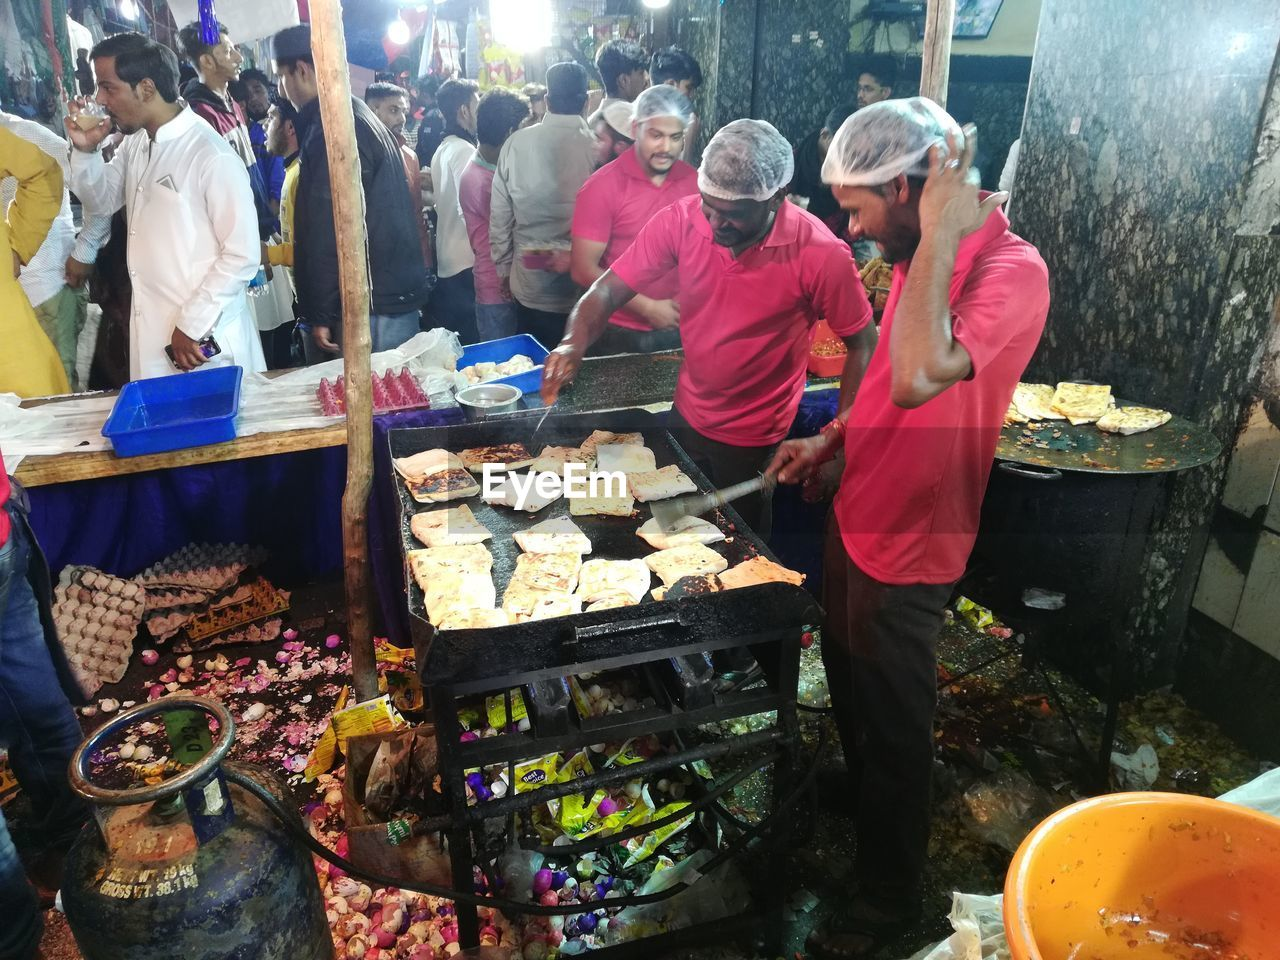 men, market, real people, food, food and drink, group of people, occupation, retail, market stall, people, preparing food, standing, preparation, adult, casual clothing, choice, day, women, meat, selling, outdoors, buying